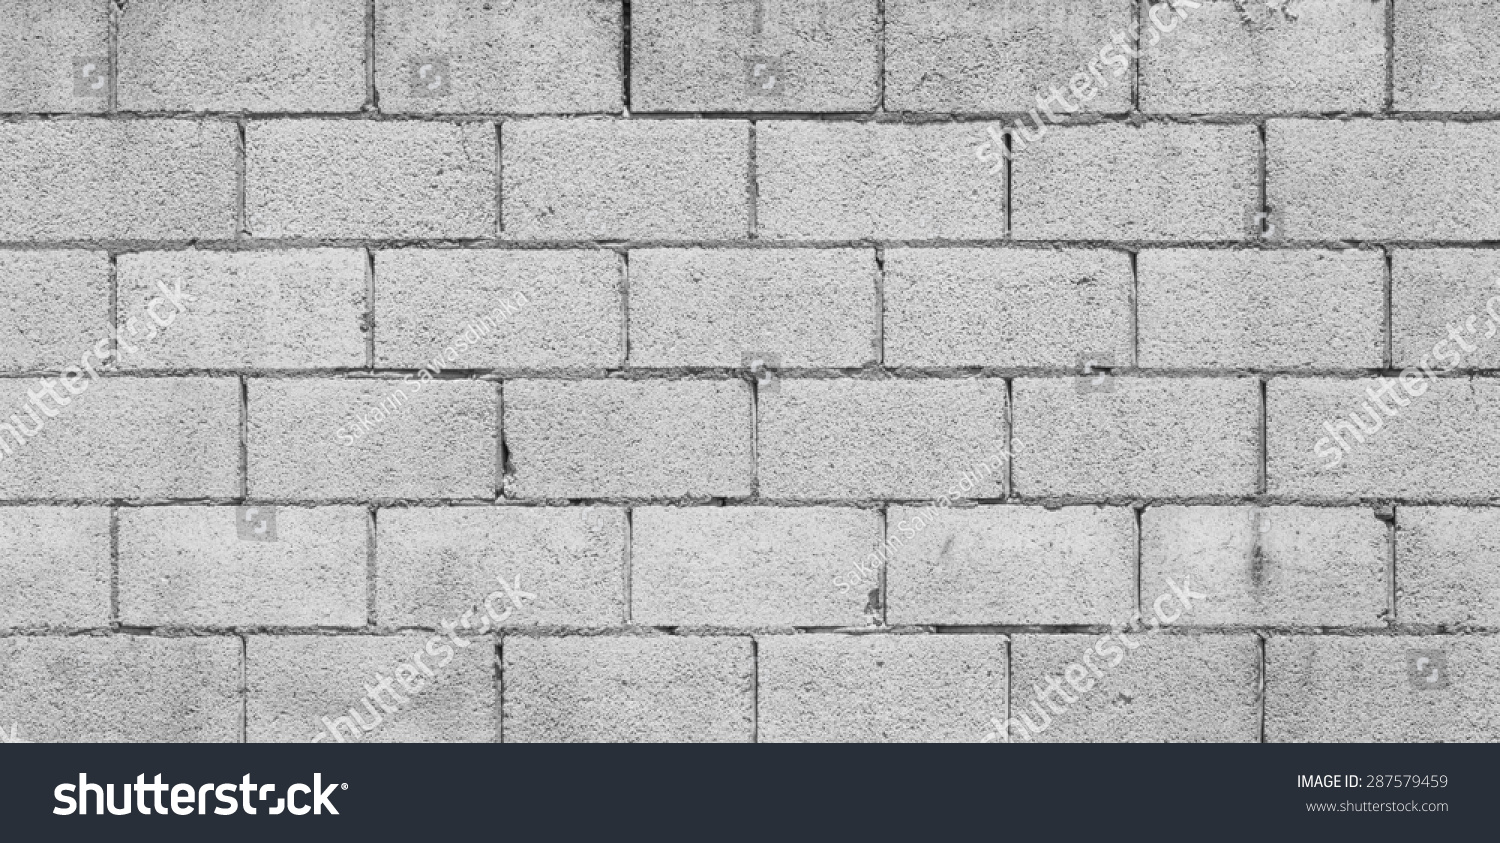 Seamless Block Wall : Concrete block wall texture background seamless stock